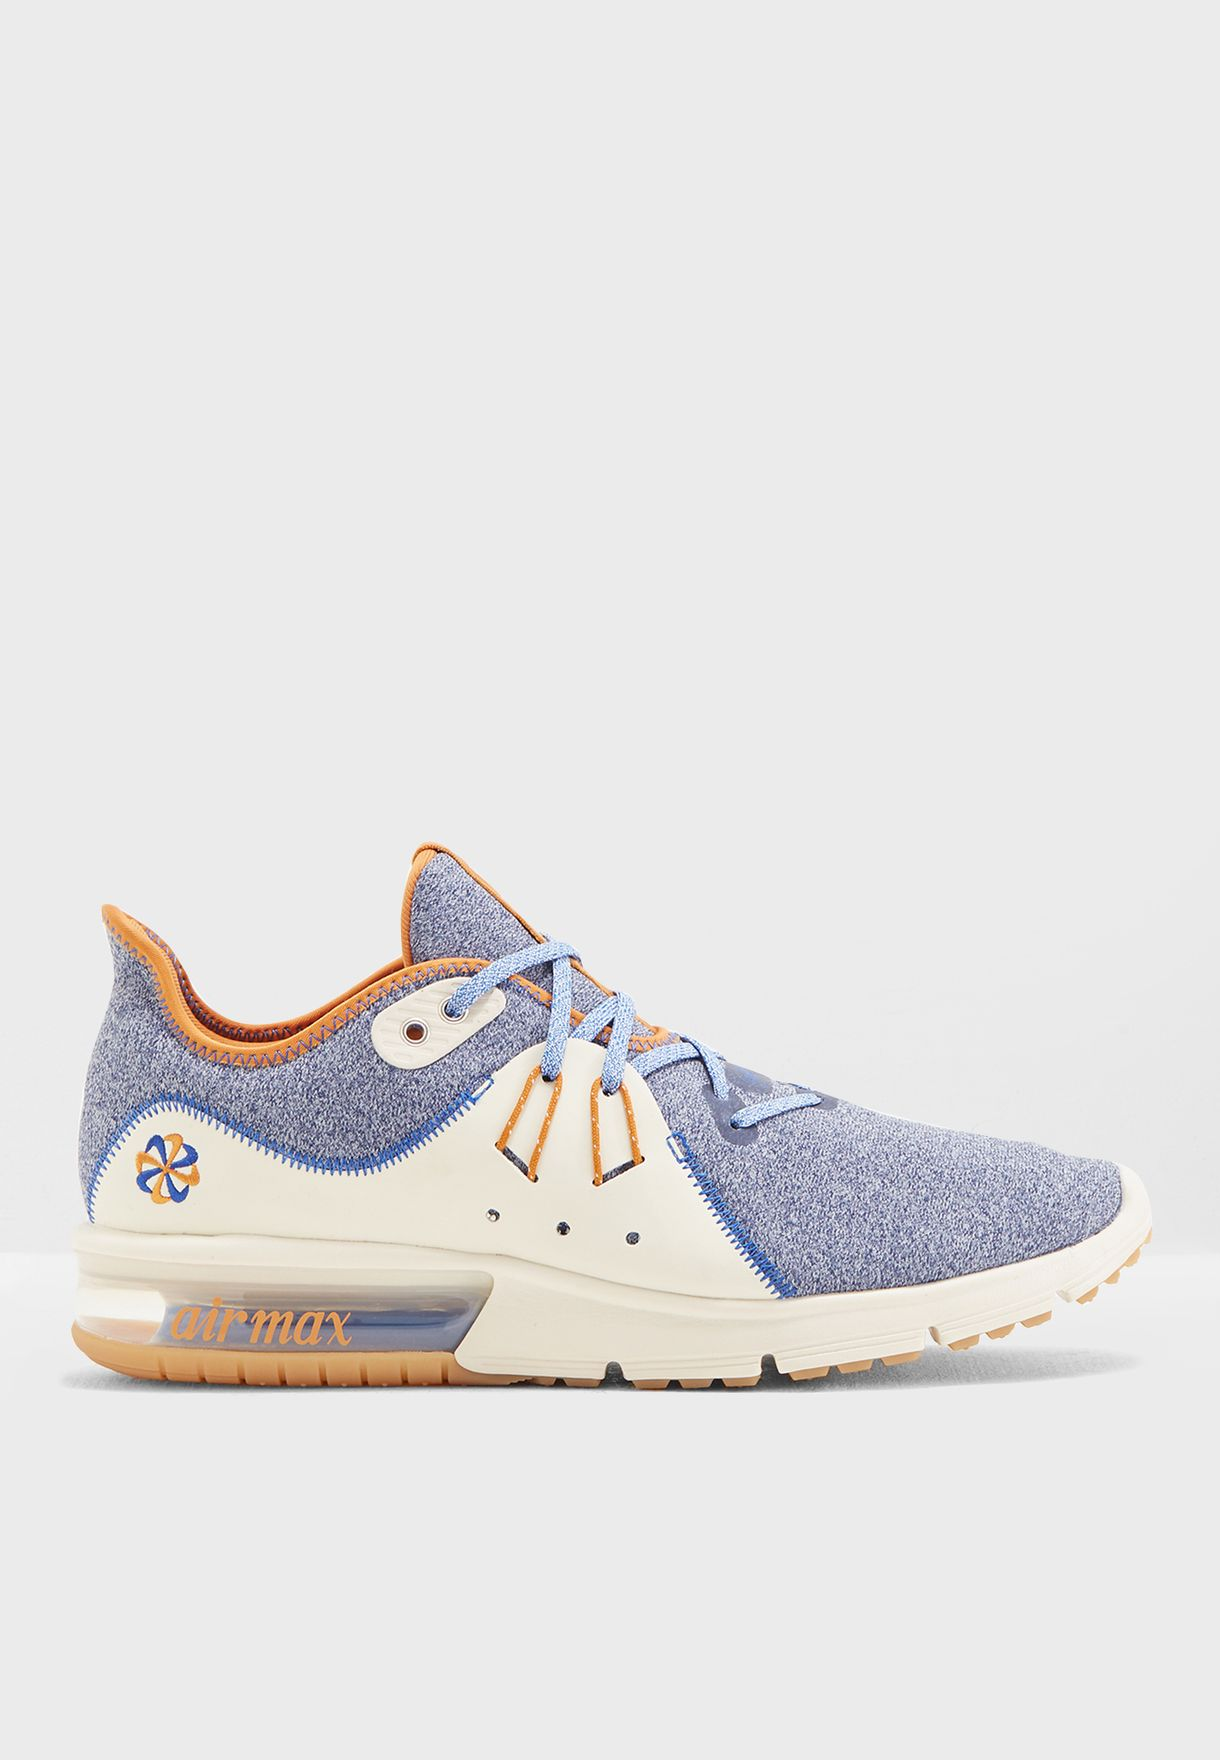 Air Max Sequent 3 PRM VST